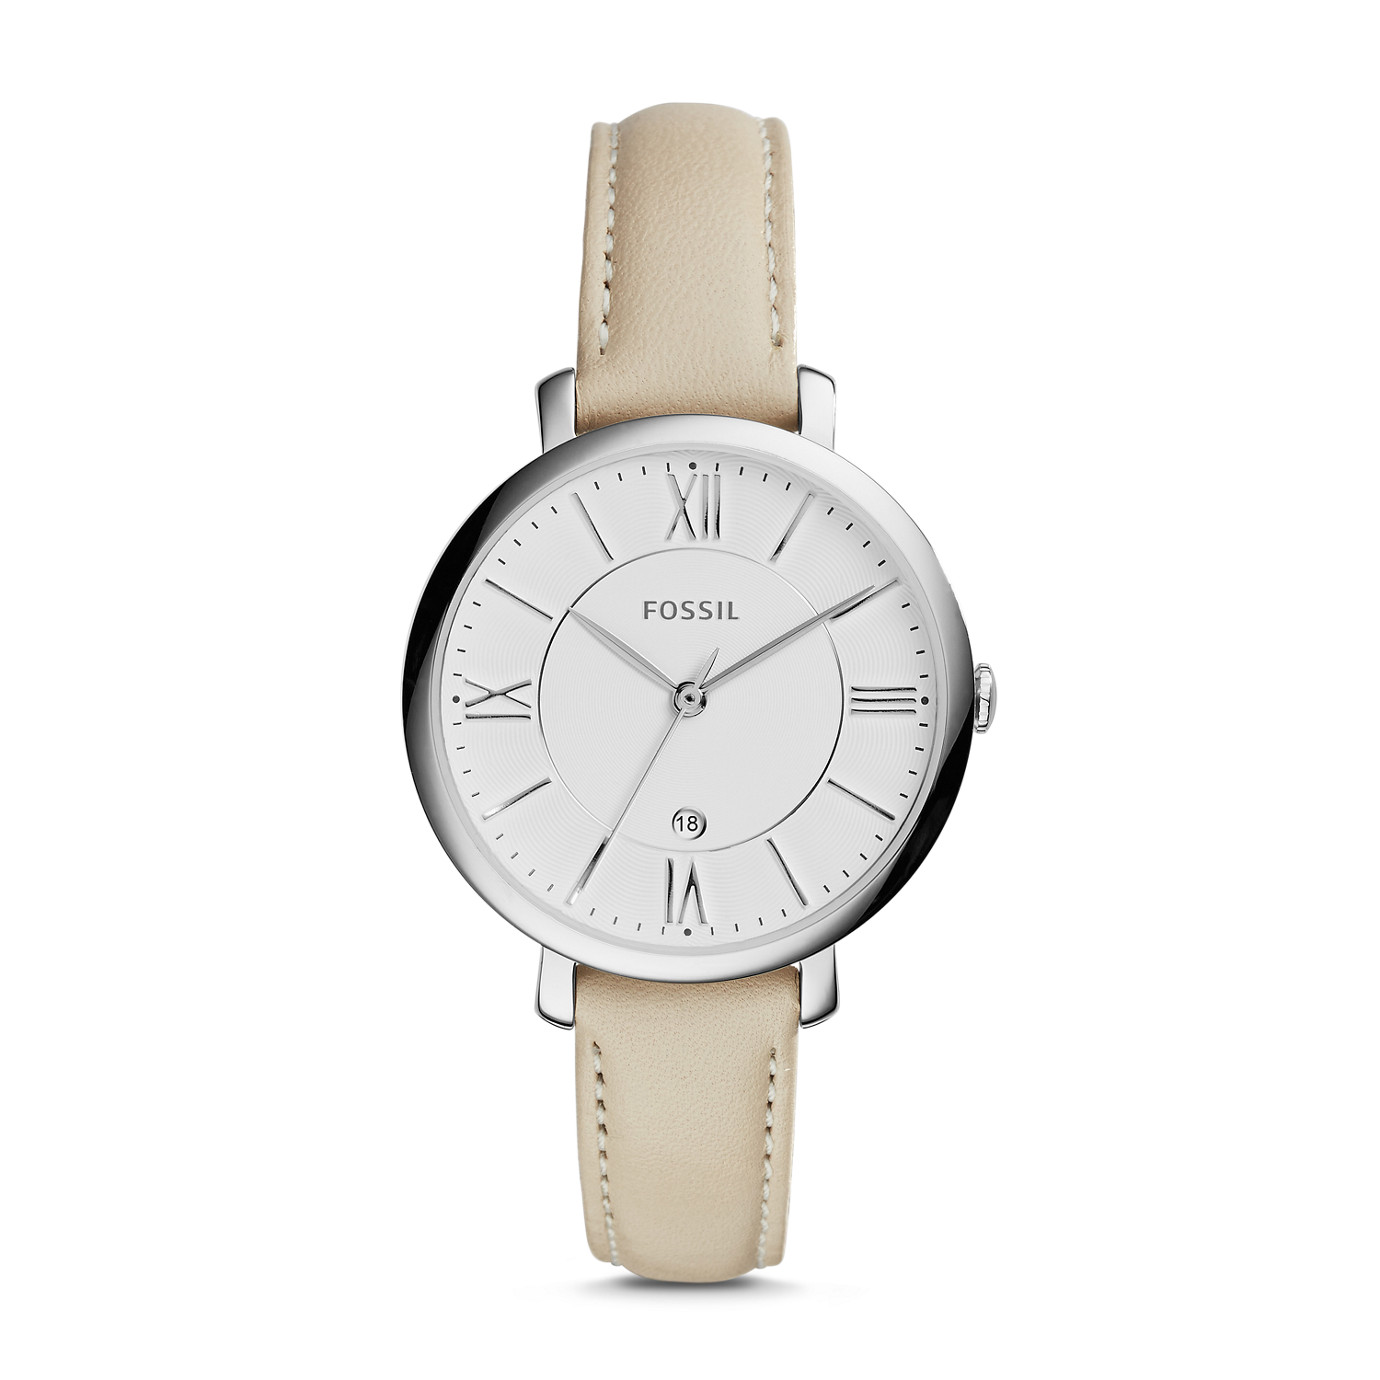 Jacqueline Three-Hand Date Leather Watch – White